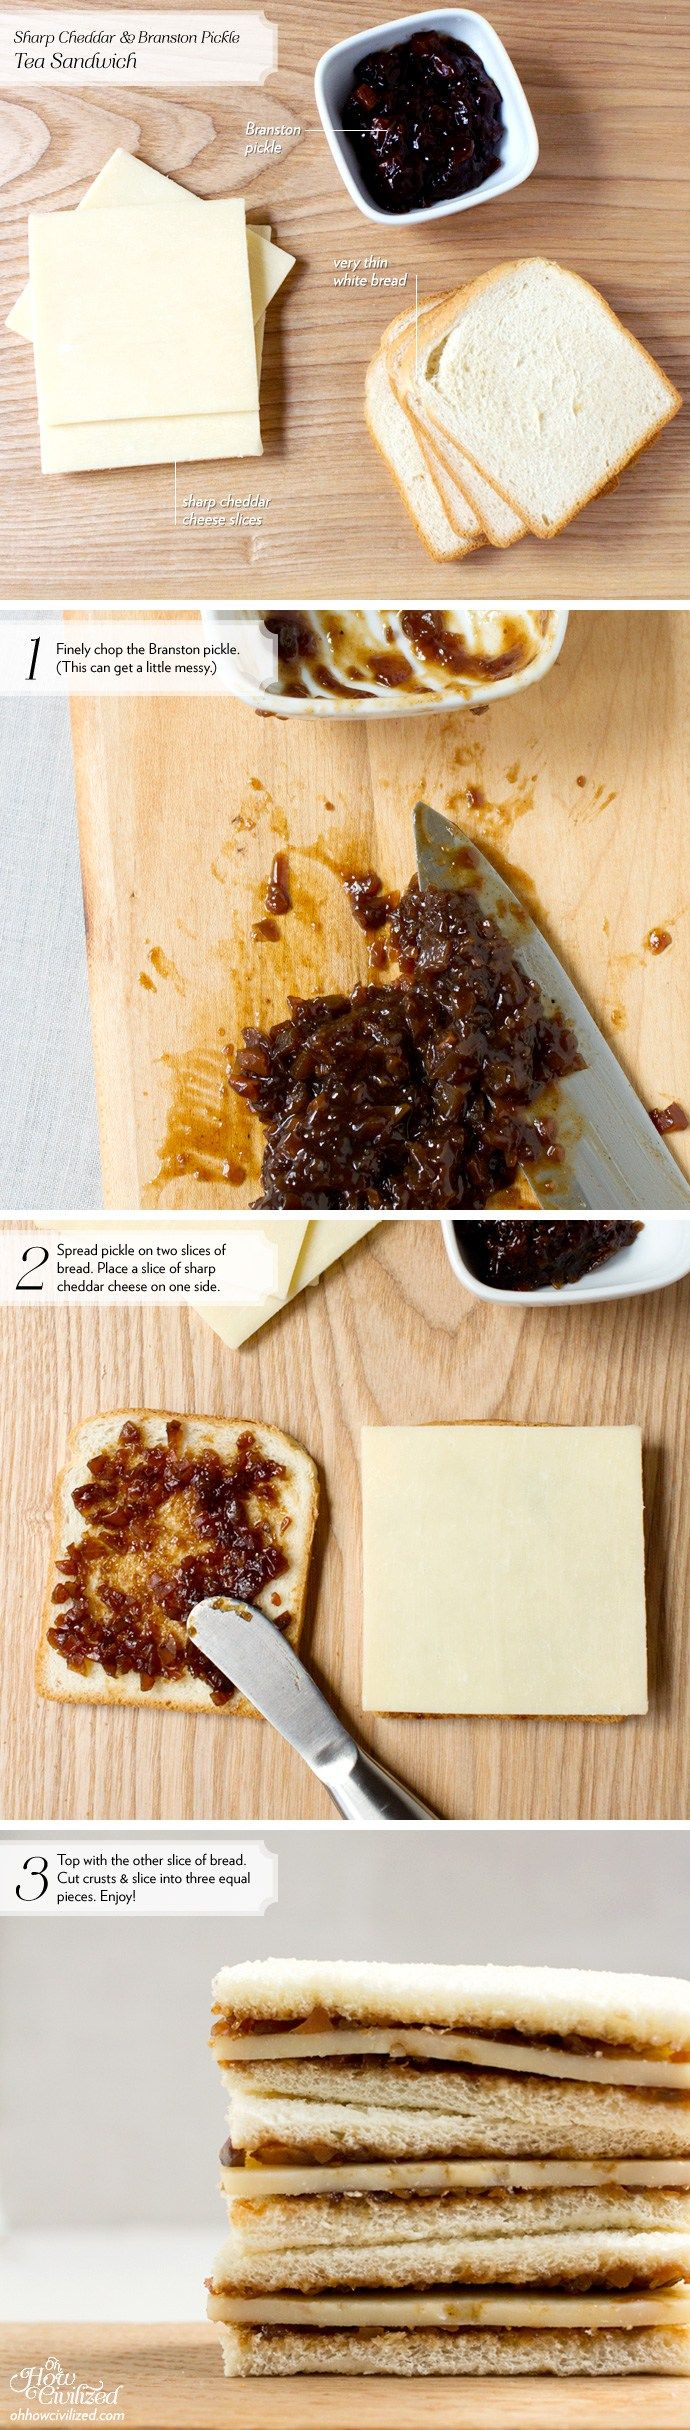 One of the easiest tea sandwiches to make, this Sharp Cheddar & Branston Pickle is tangy and hearty. Branston Pickle is a British pickle relish made of a mix of vegetables.